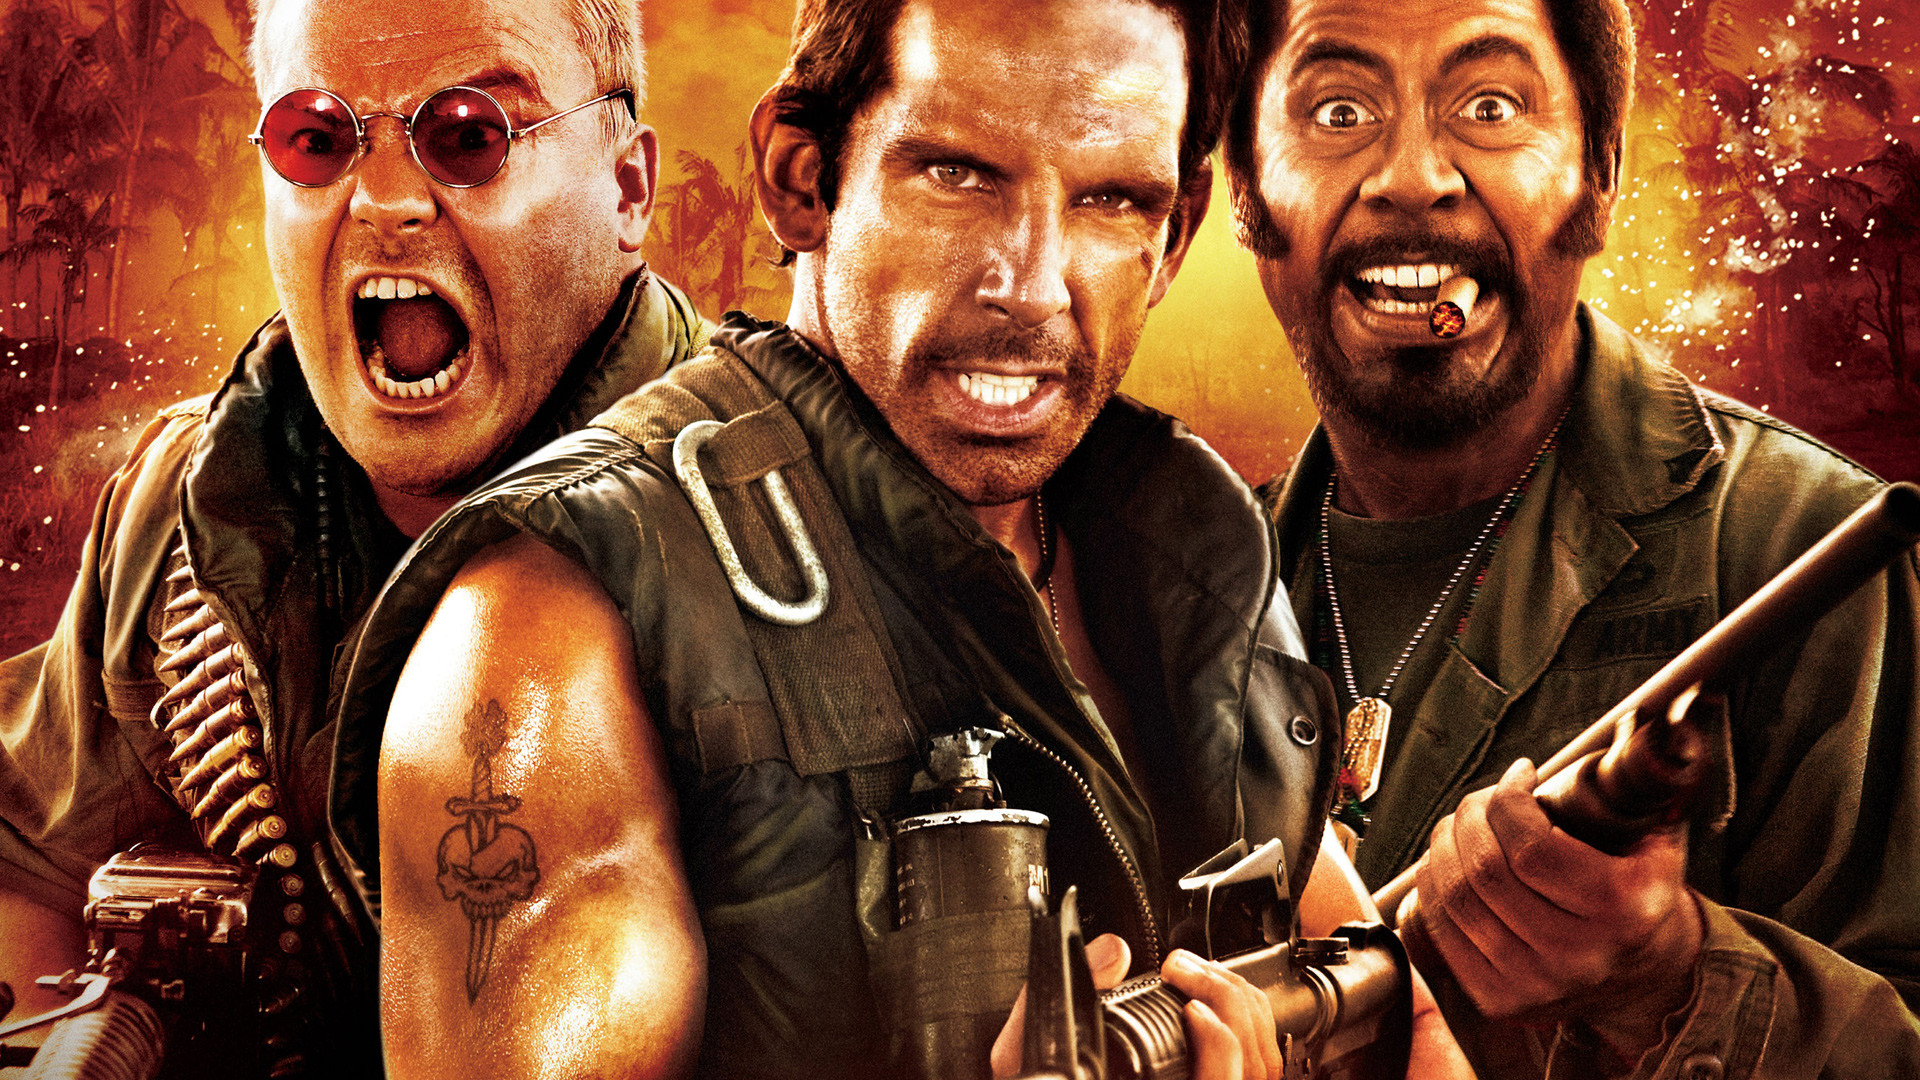 Tropic Thunder Theme Song